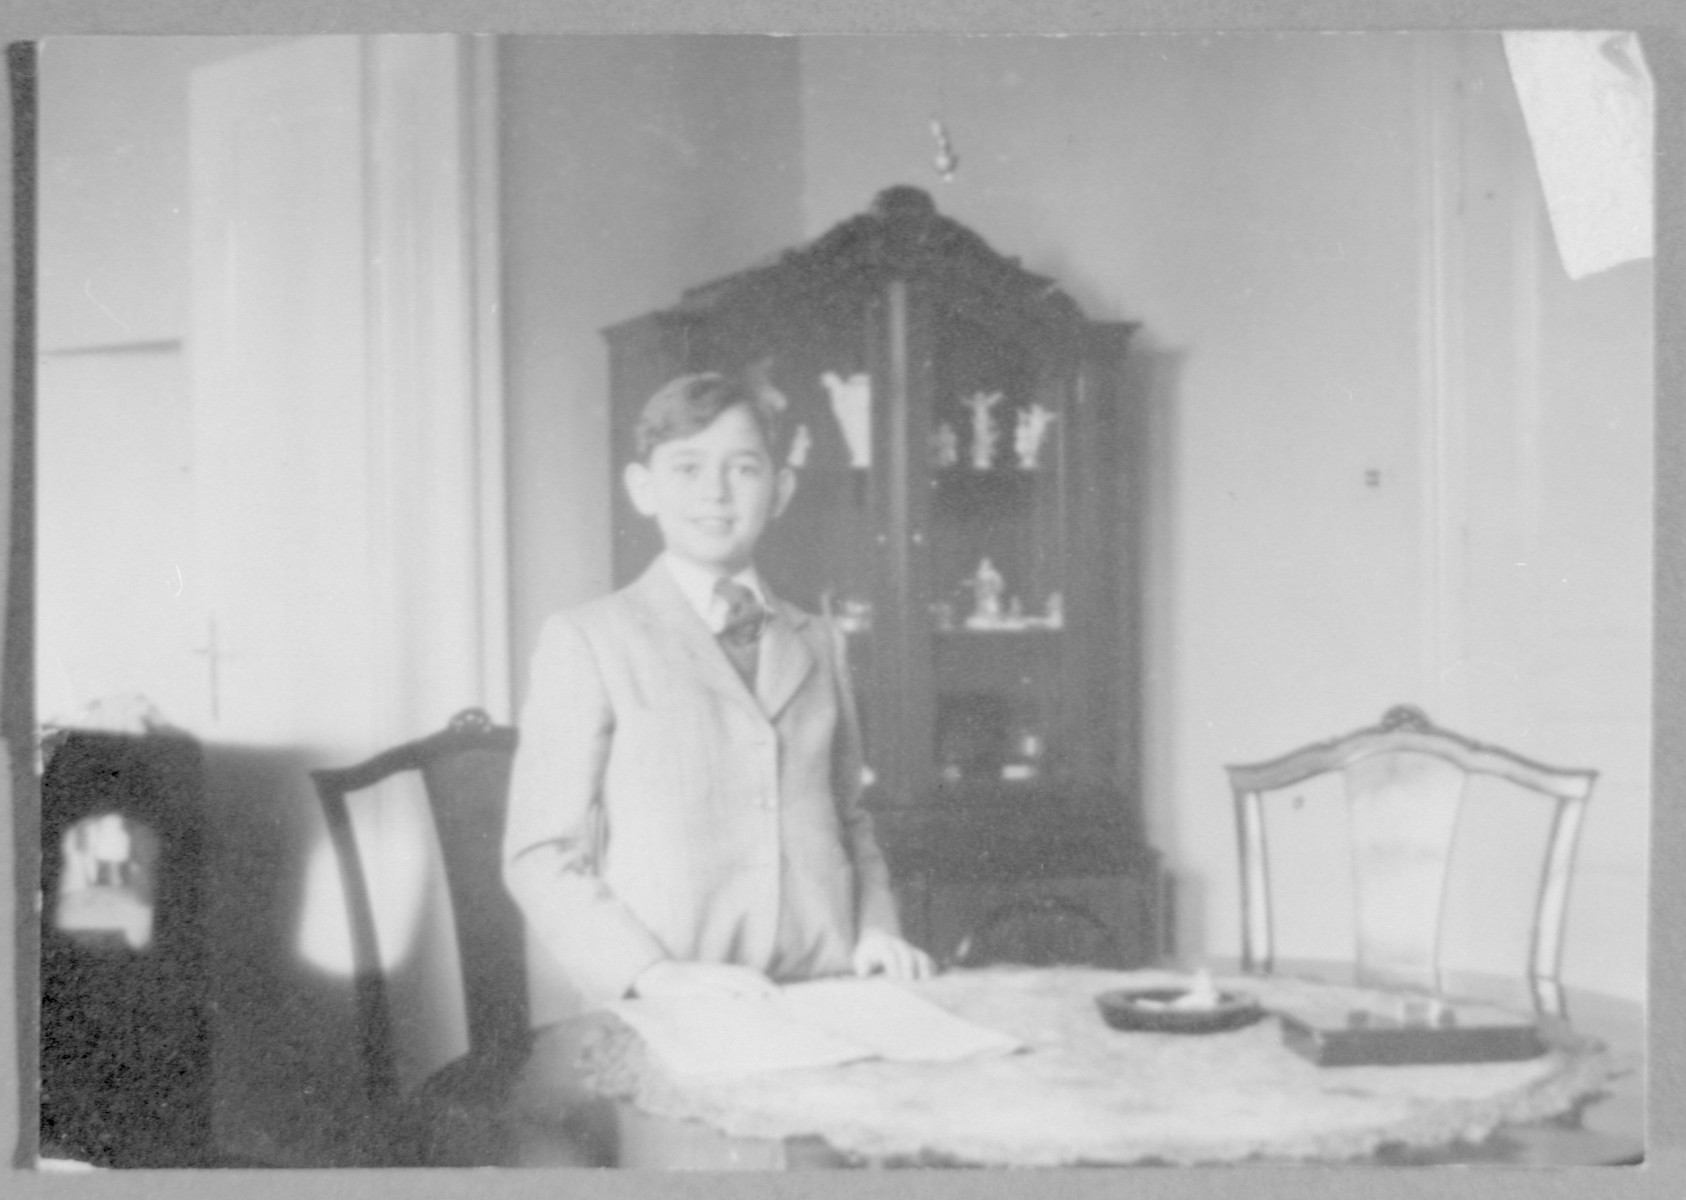 Roman Frister stands by the dining room table in his home.